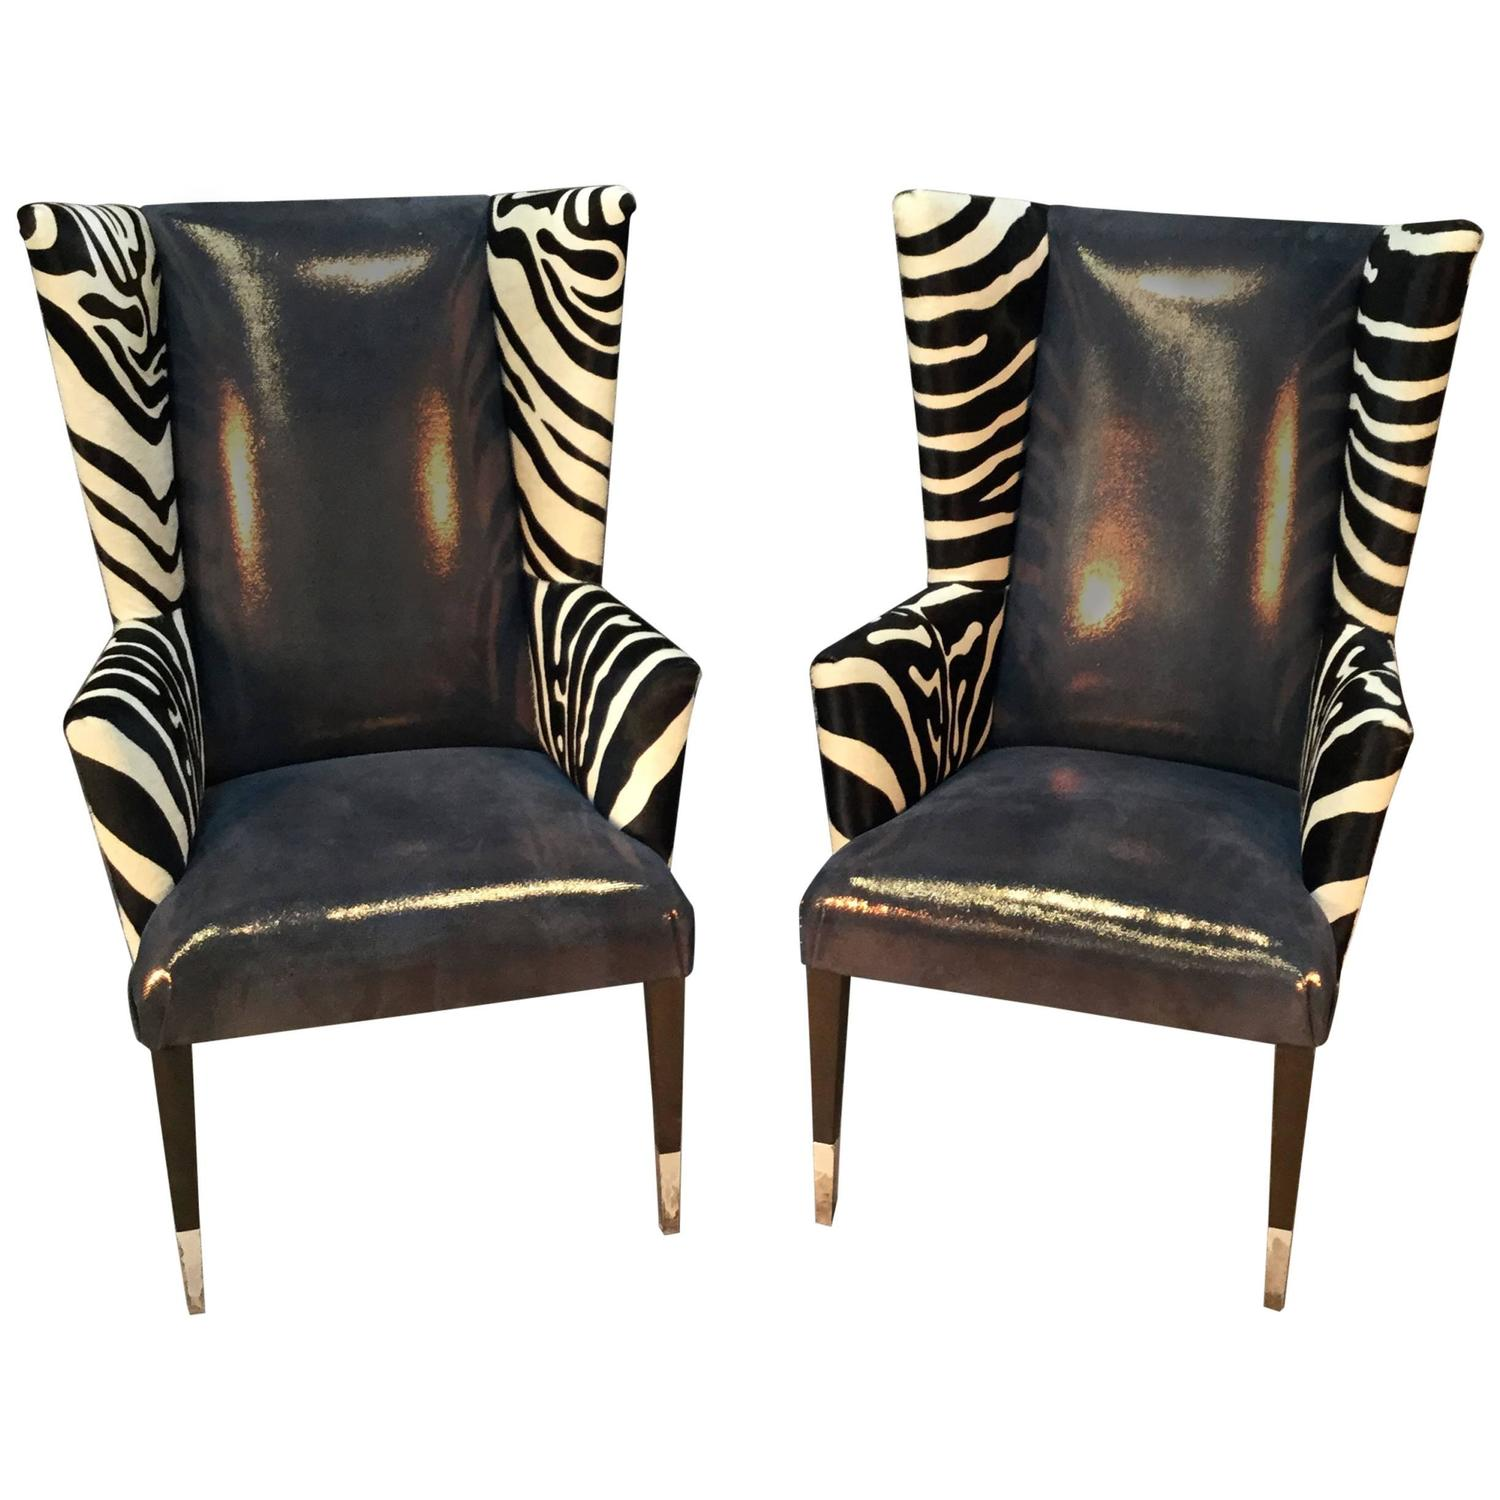 zebra print chairs for sale stylish high chair pair of modern wingback in printed cowhide